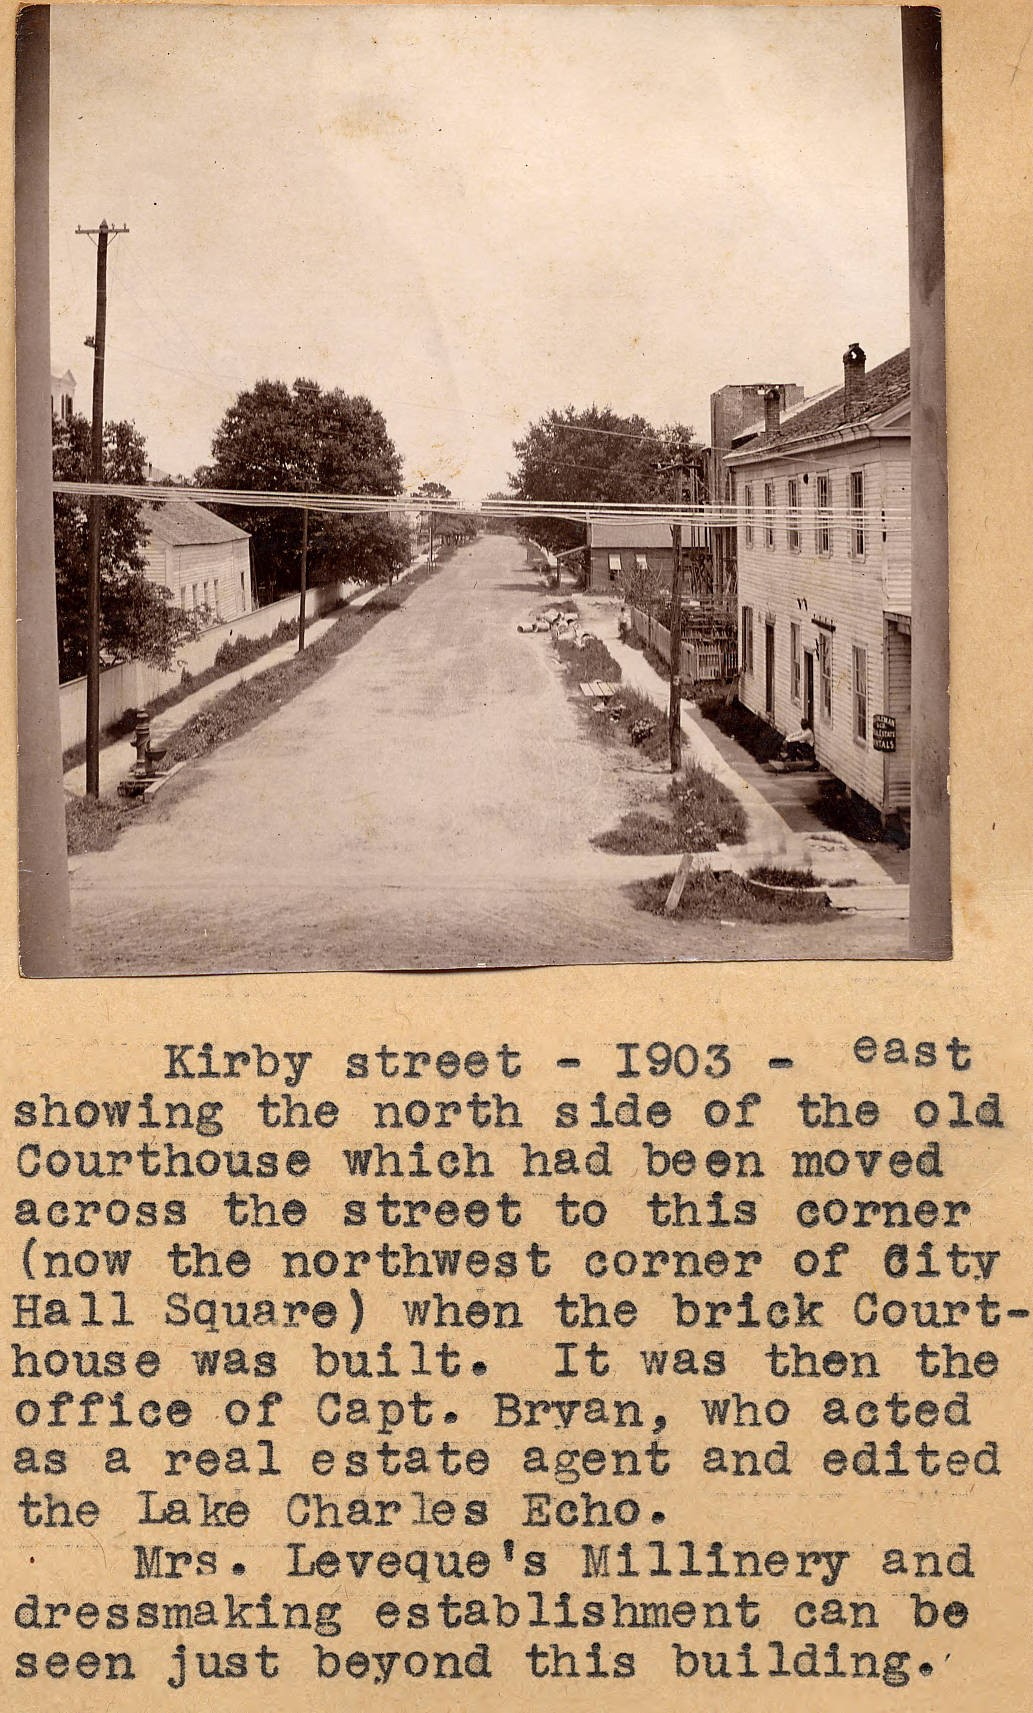 Image of Kirby Street with explanatory note